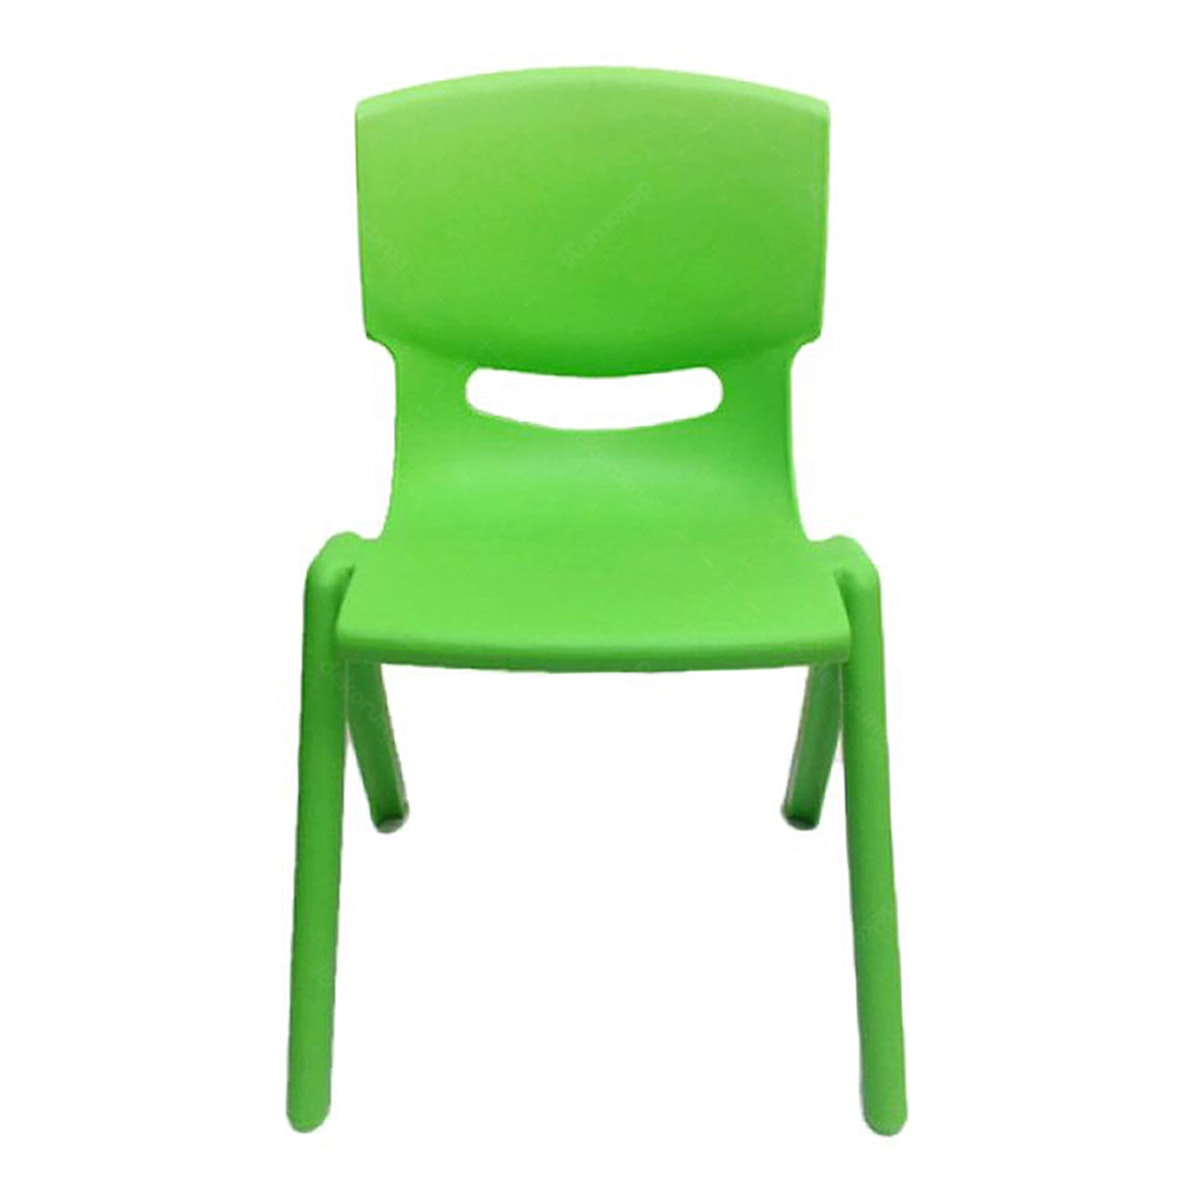 Graphix Pikko Chair - Kursi Anak / Bangku - Green (2 pcs)